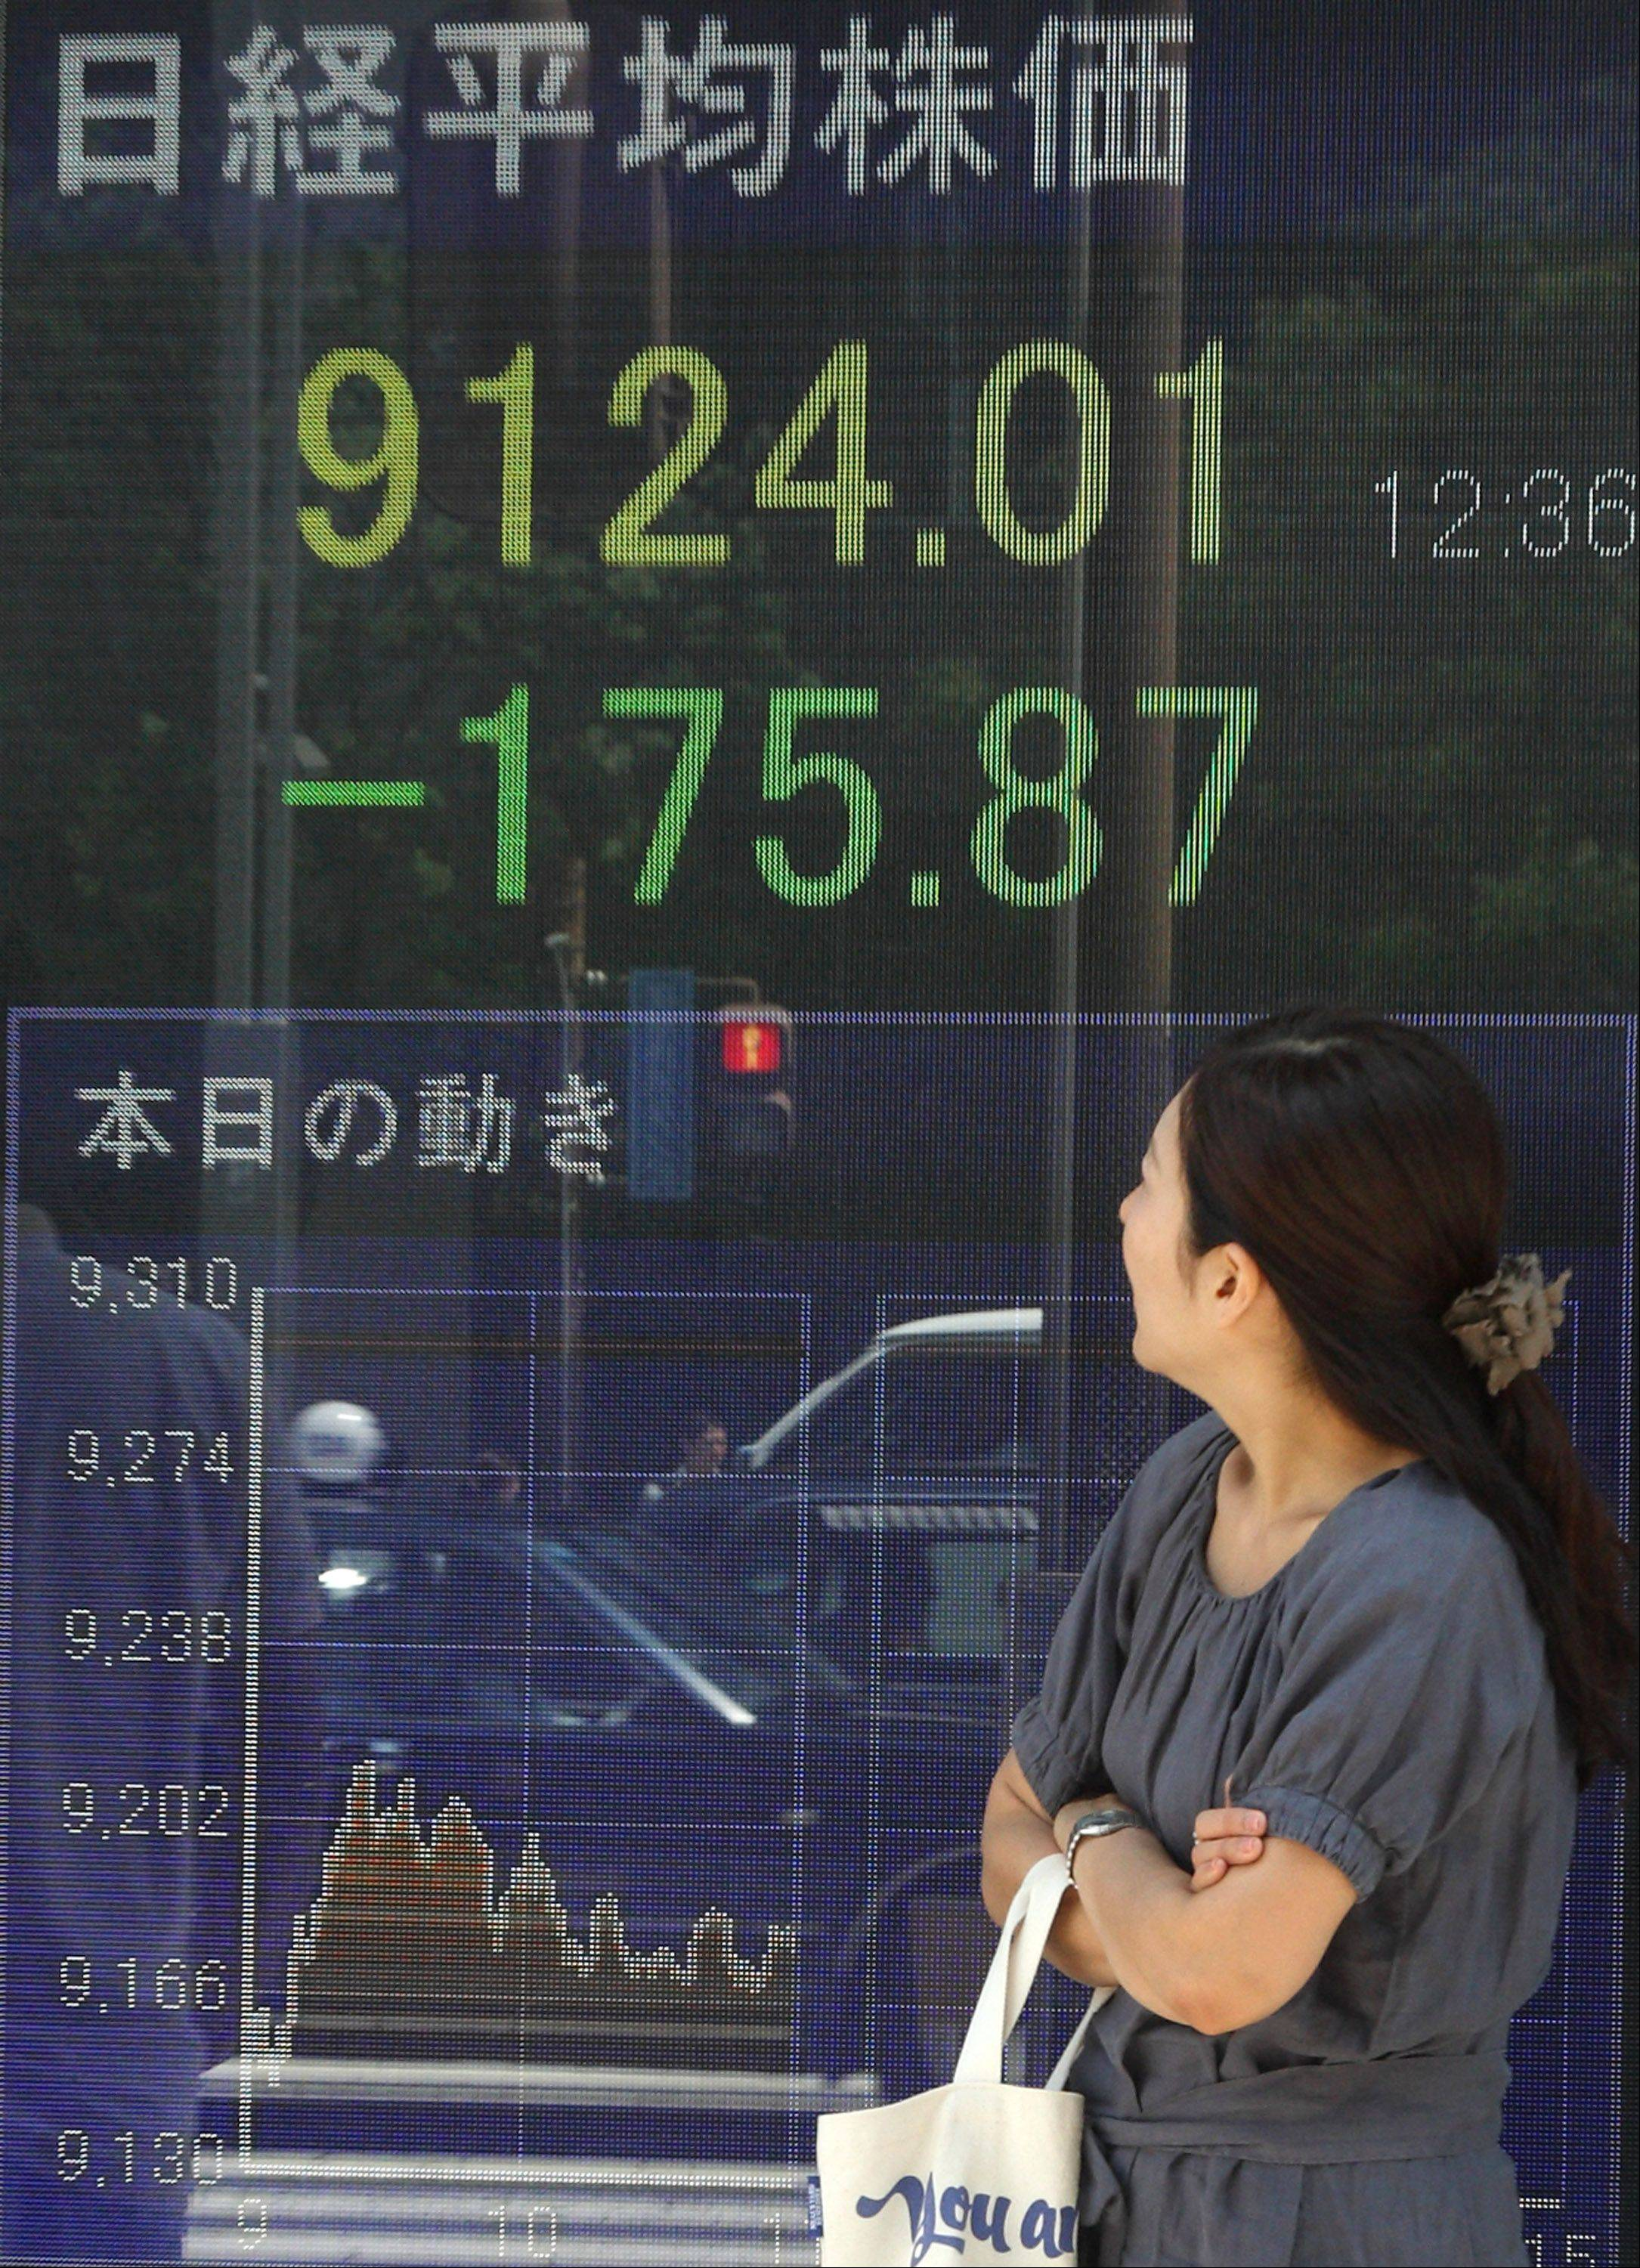 A pedestrian looks at an electronic stock board displaying a midday figure of the Nikkei 225 Stock Average outside a securities firm in Tokyo, Japan, on Monday, Aug. 8, 2011. Japanese stocks dropped, sending the Nikkei 225 Stock Average to its biggest two-day decline since March, after Standard & Poor's Ratings Services cut the U.S. government's credit rating, damping the outlook for Asia's banks and exporters.